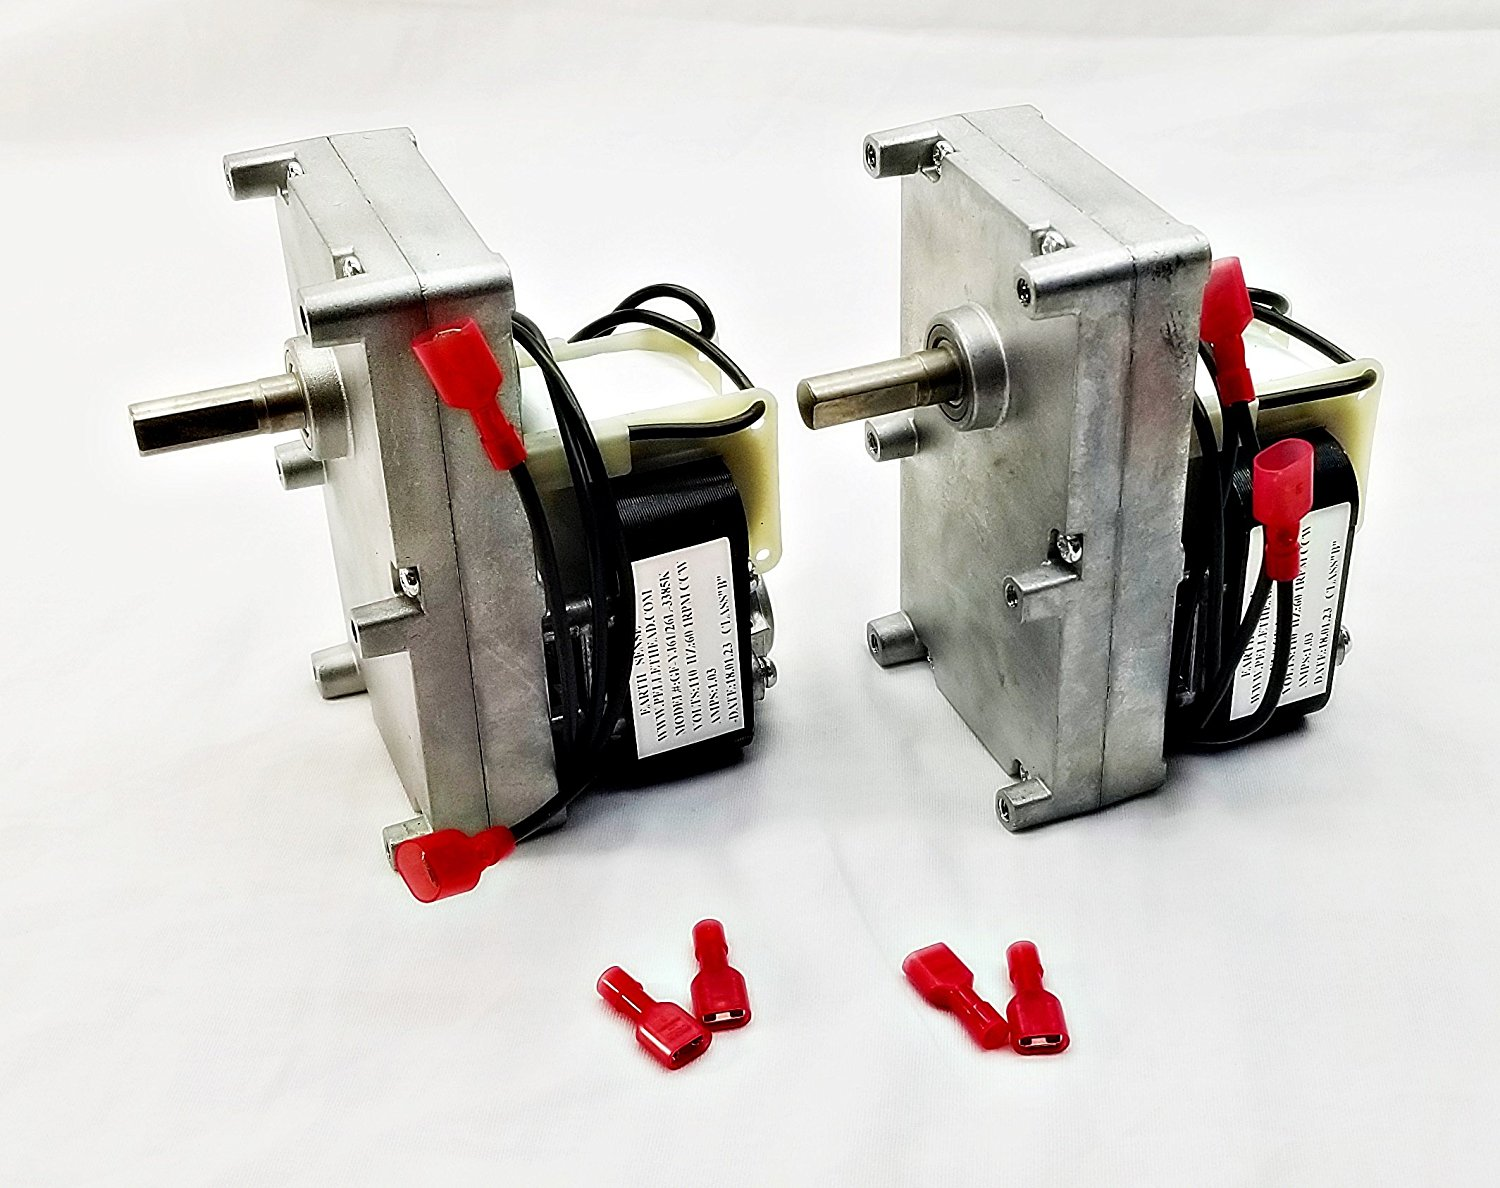 2 Pack - Englander 1RPM Pellet Stove Auger Motor PU-047040 PH-CCW1- Top and Bottom Auger Motor